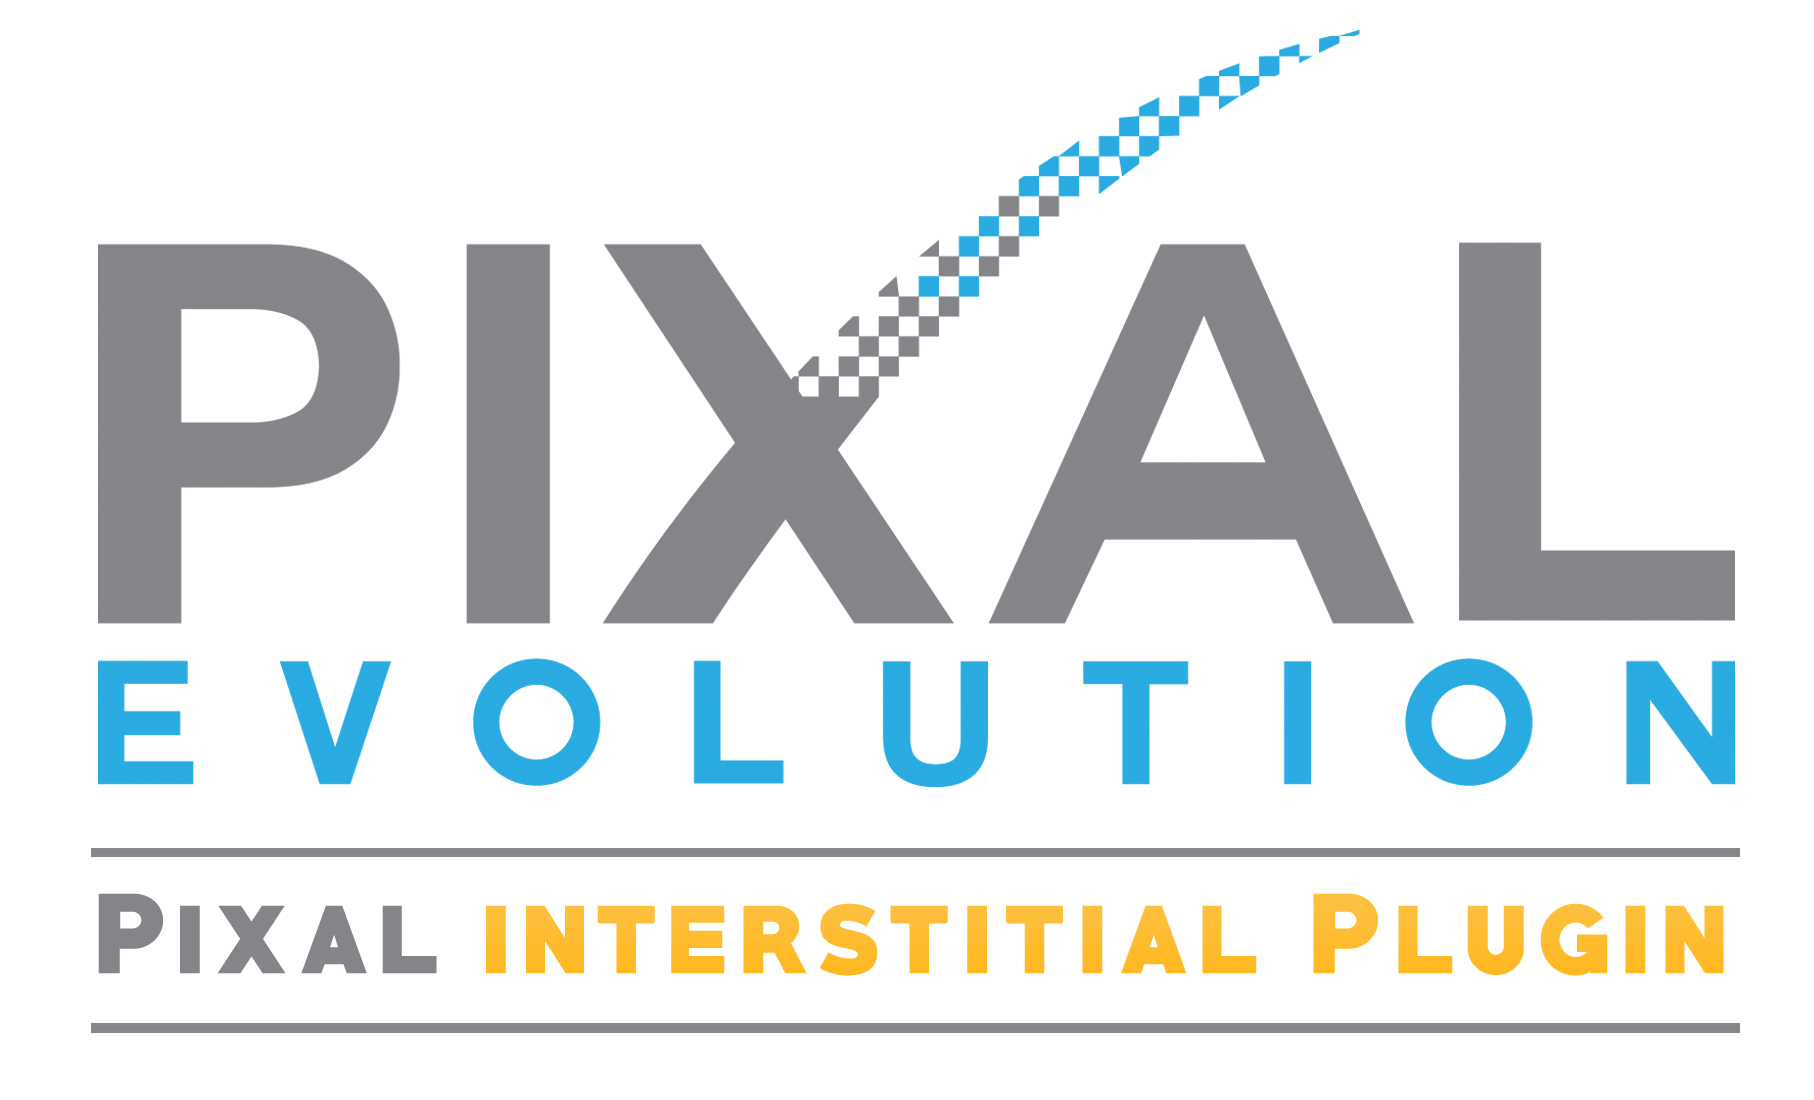 Pixal-Interstitial-Plugin-Logo Pixal Evolution